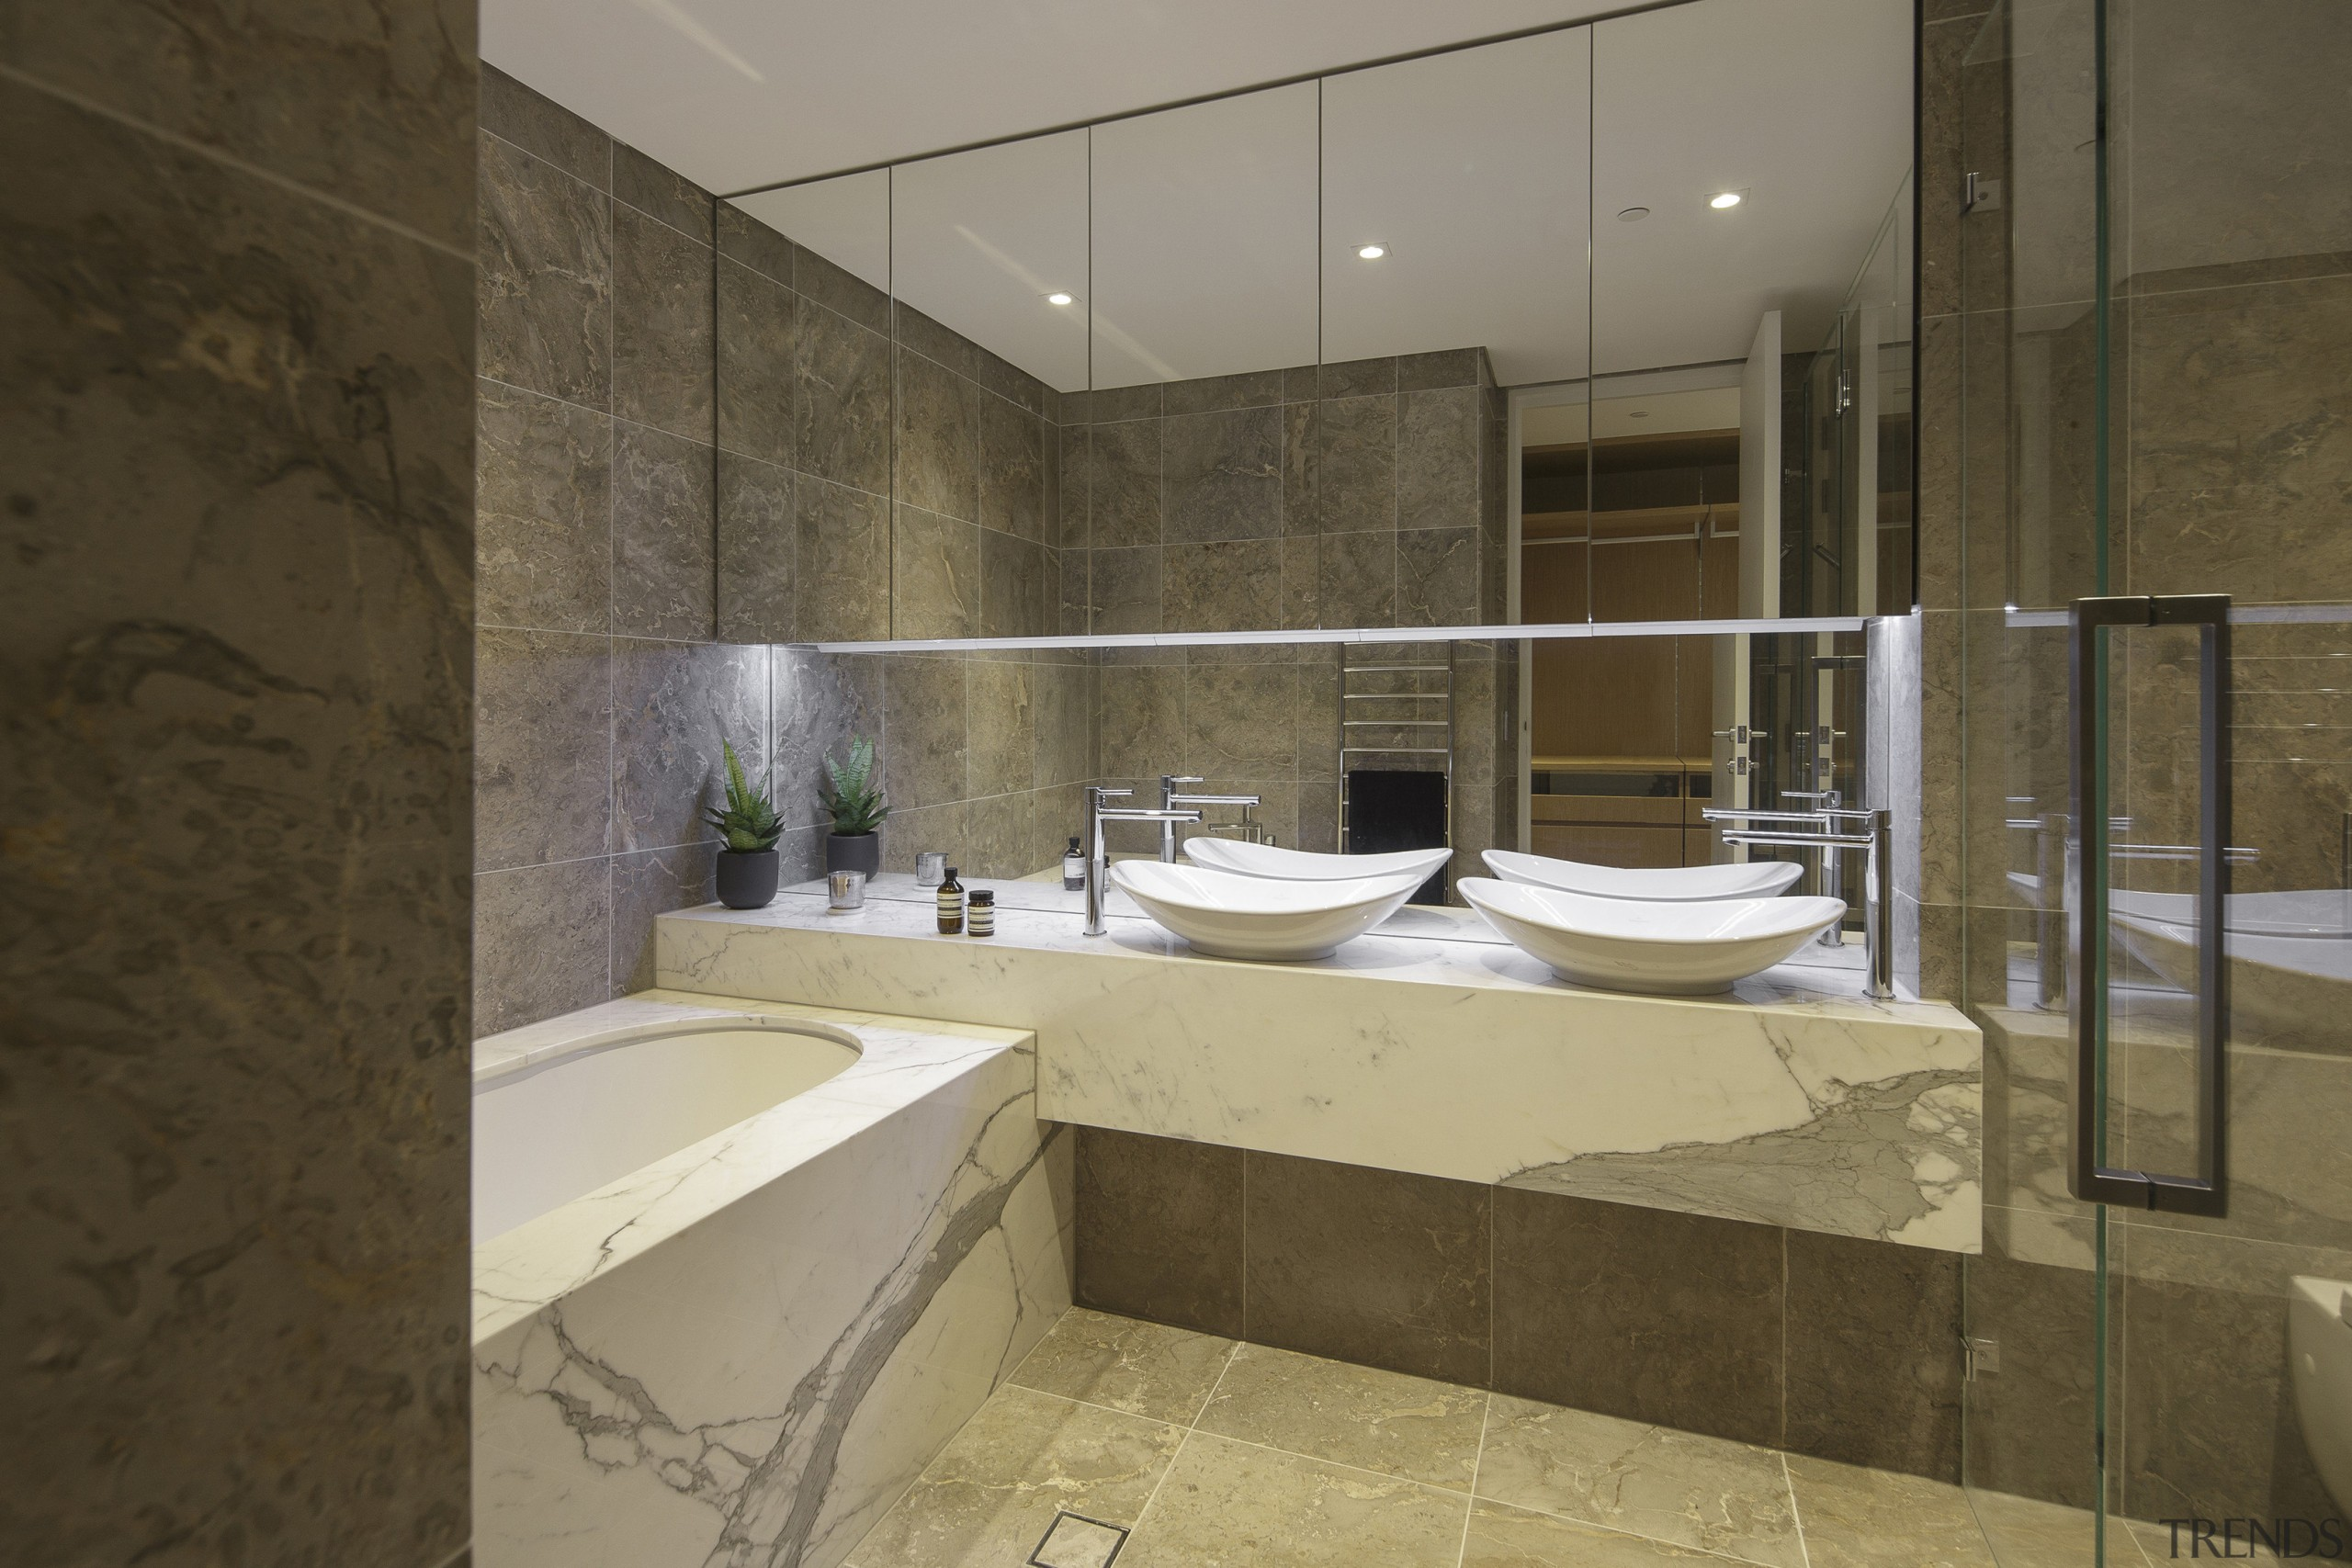 This marble-clad master bathroom has double vanities and architecture, bathroom, estate, interior design, property, room, brown